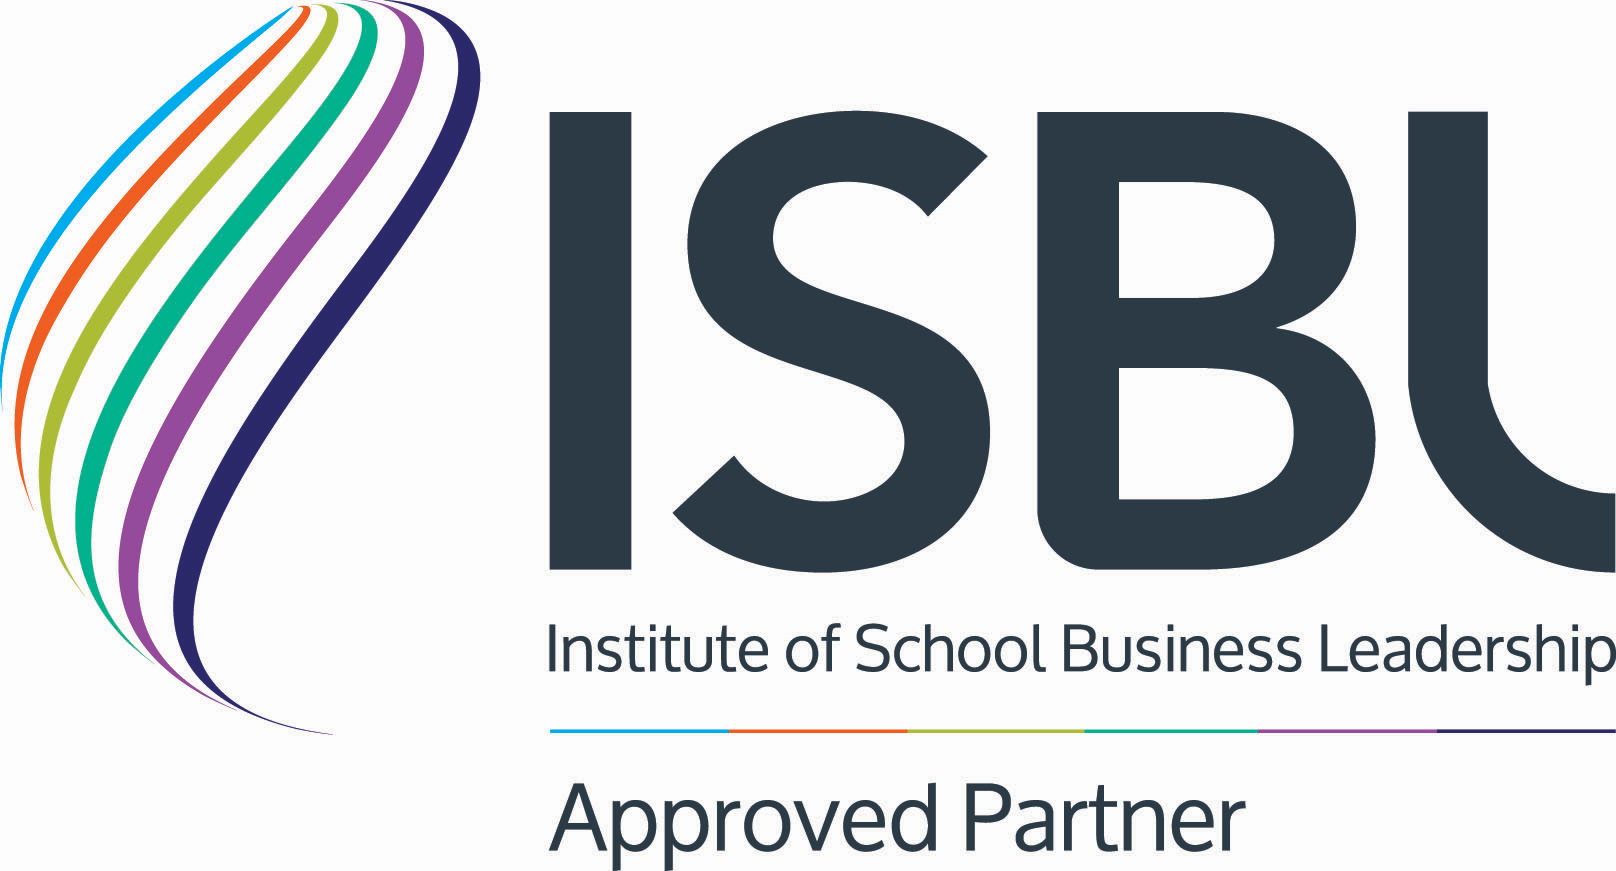 Surveyors to Education are an ISBL Approved Partner